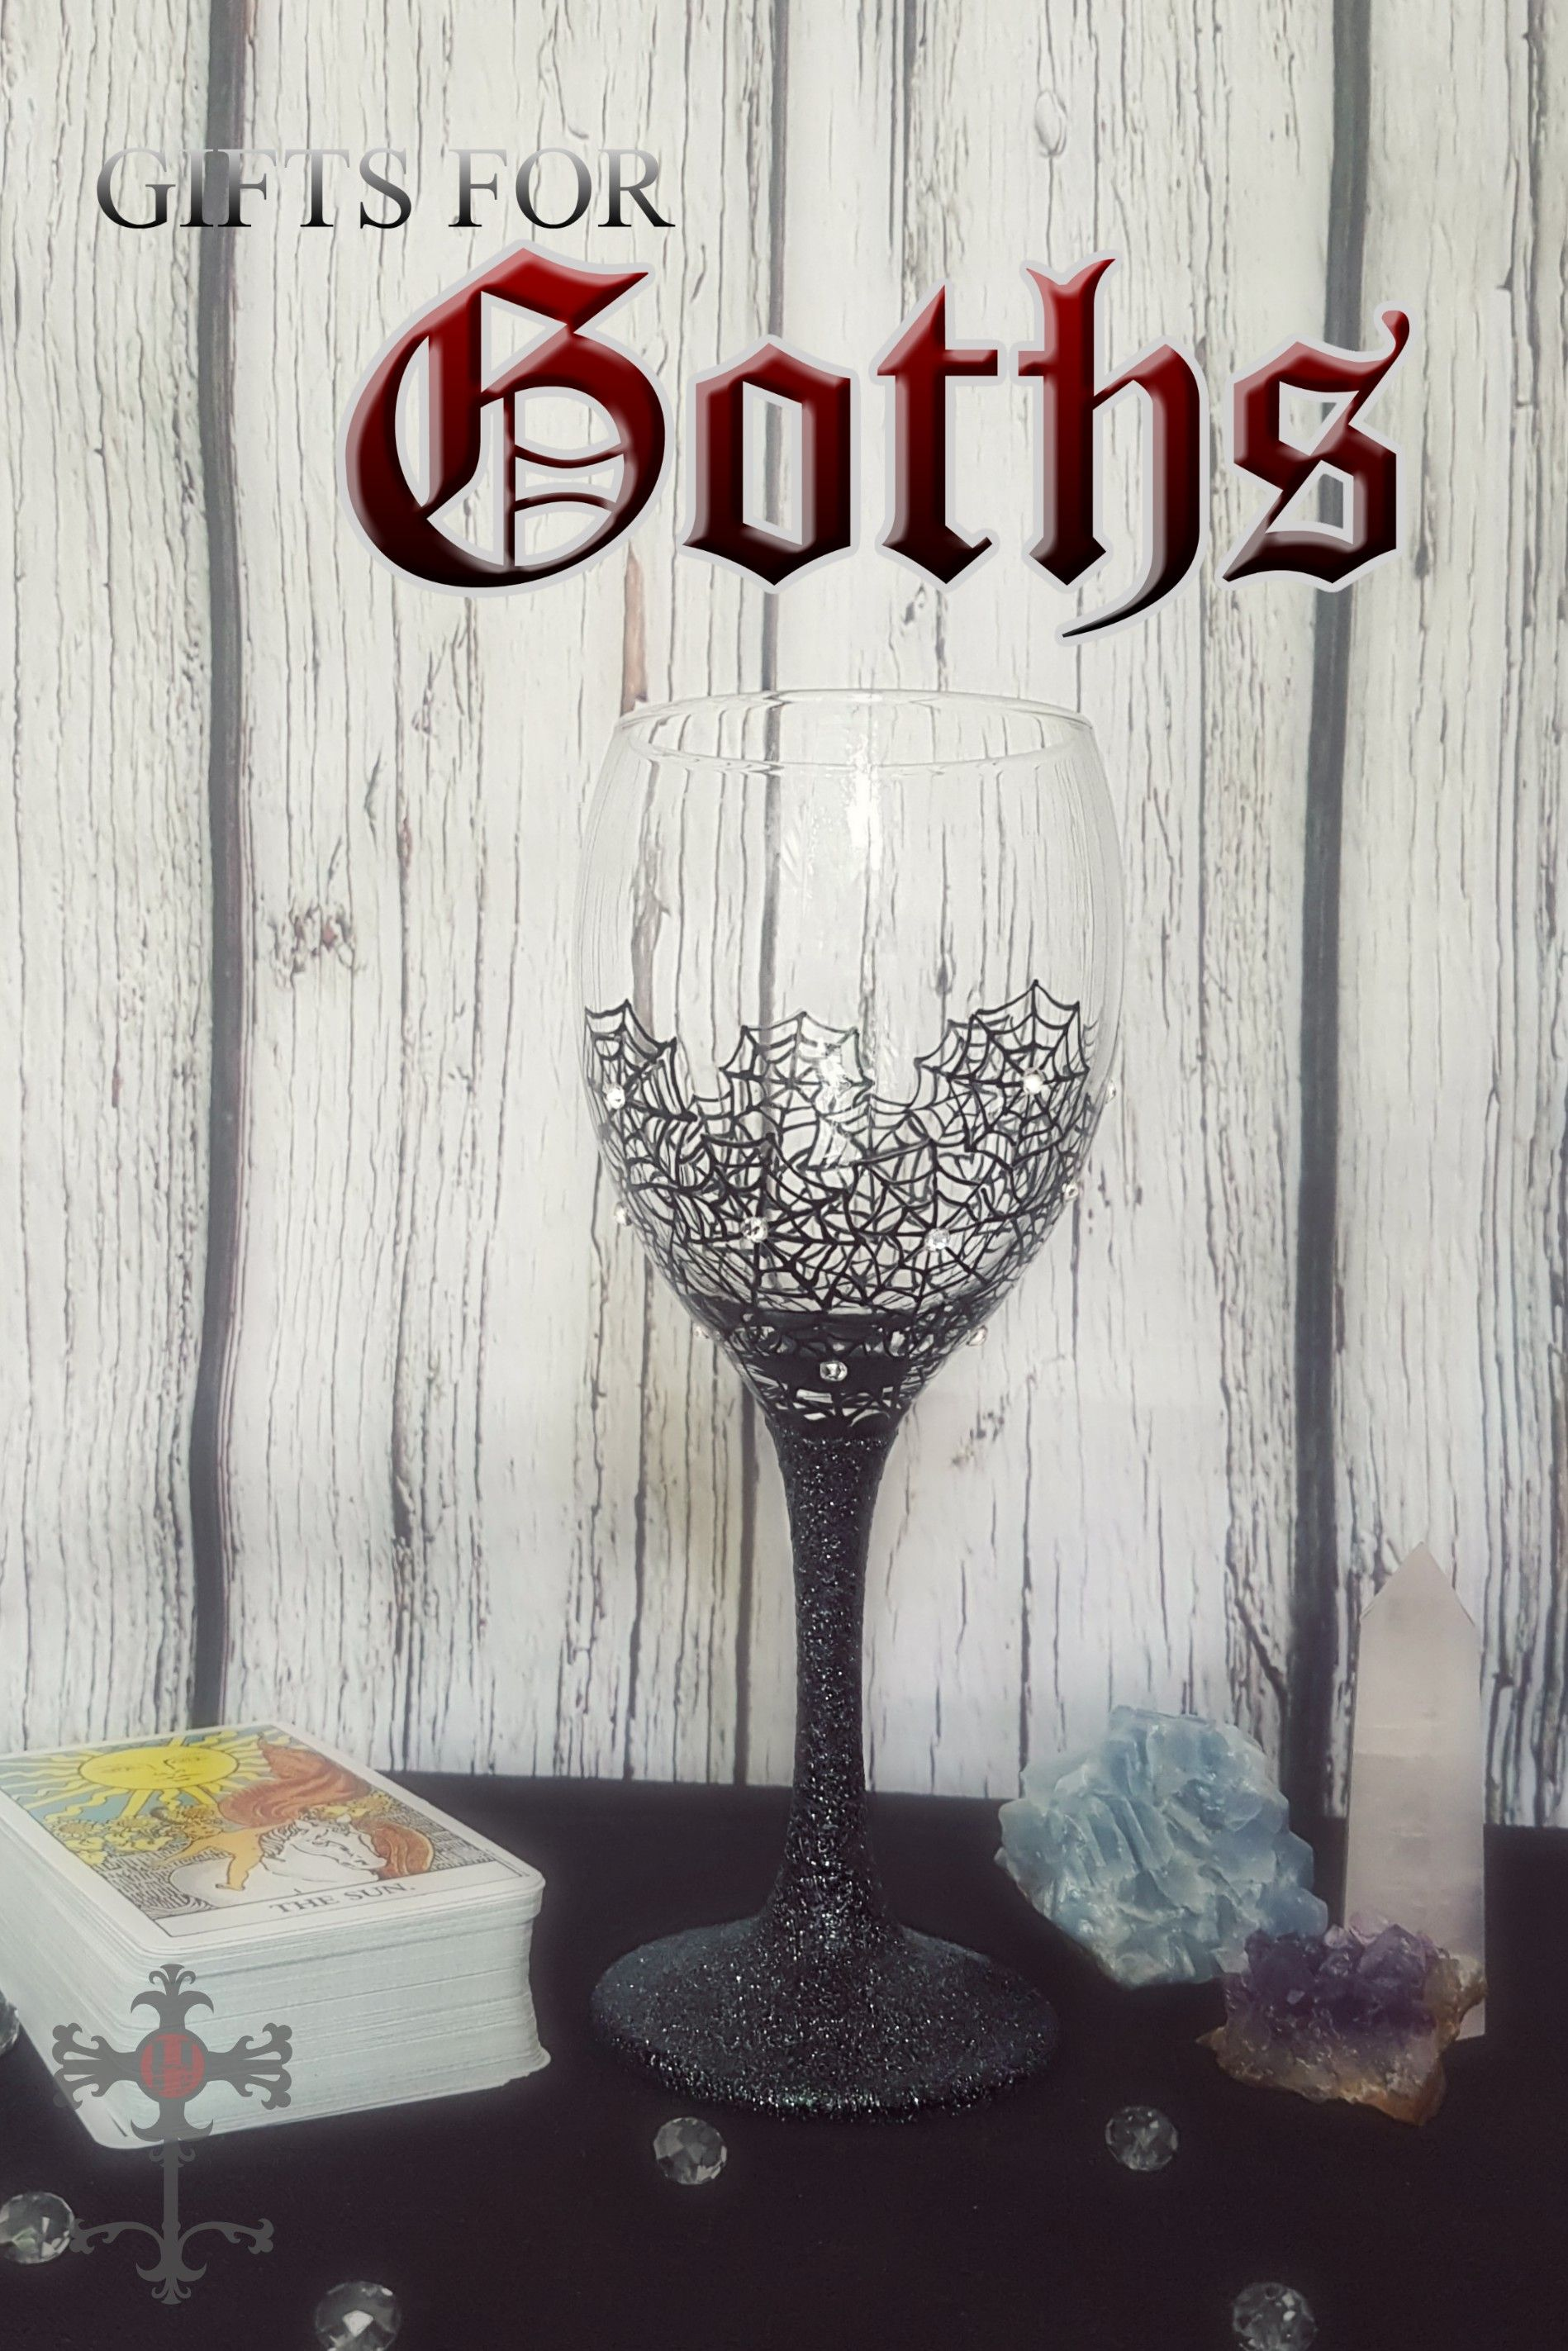 Goth Gifts, Hand Painted Wine Glass Hand painted wine